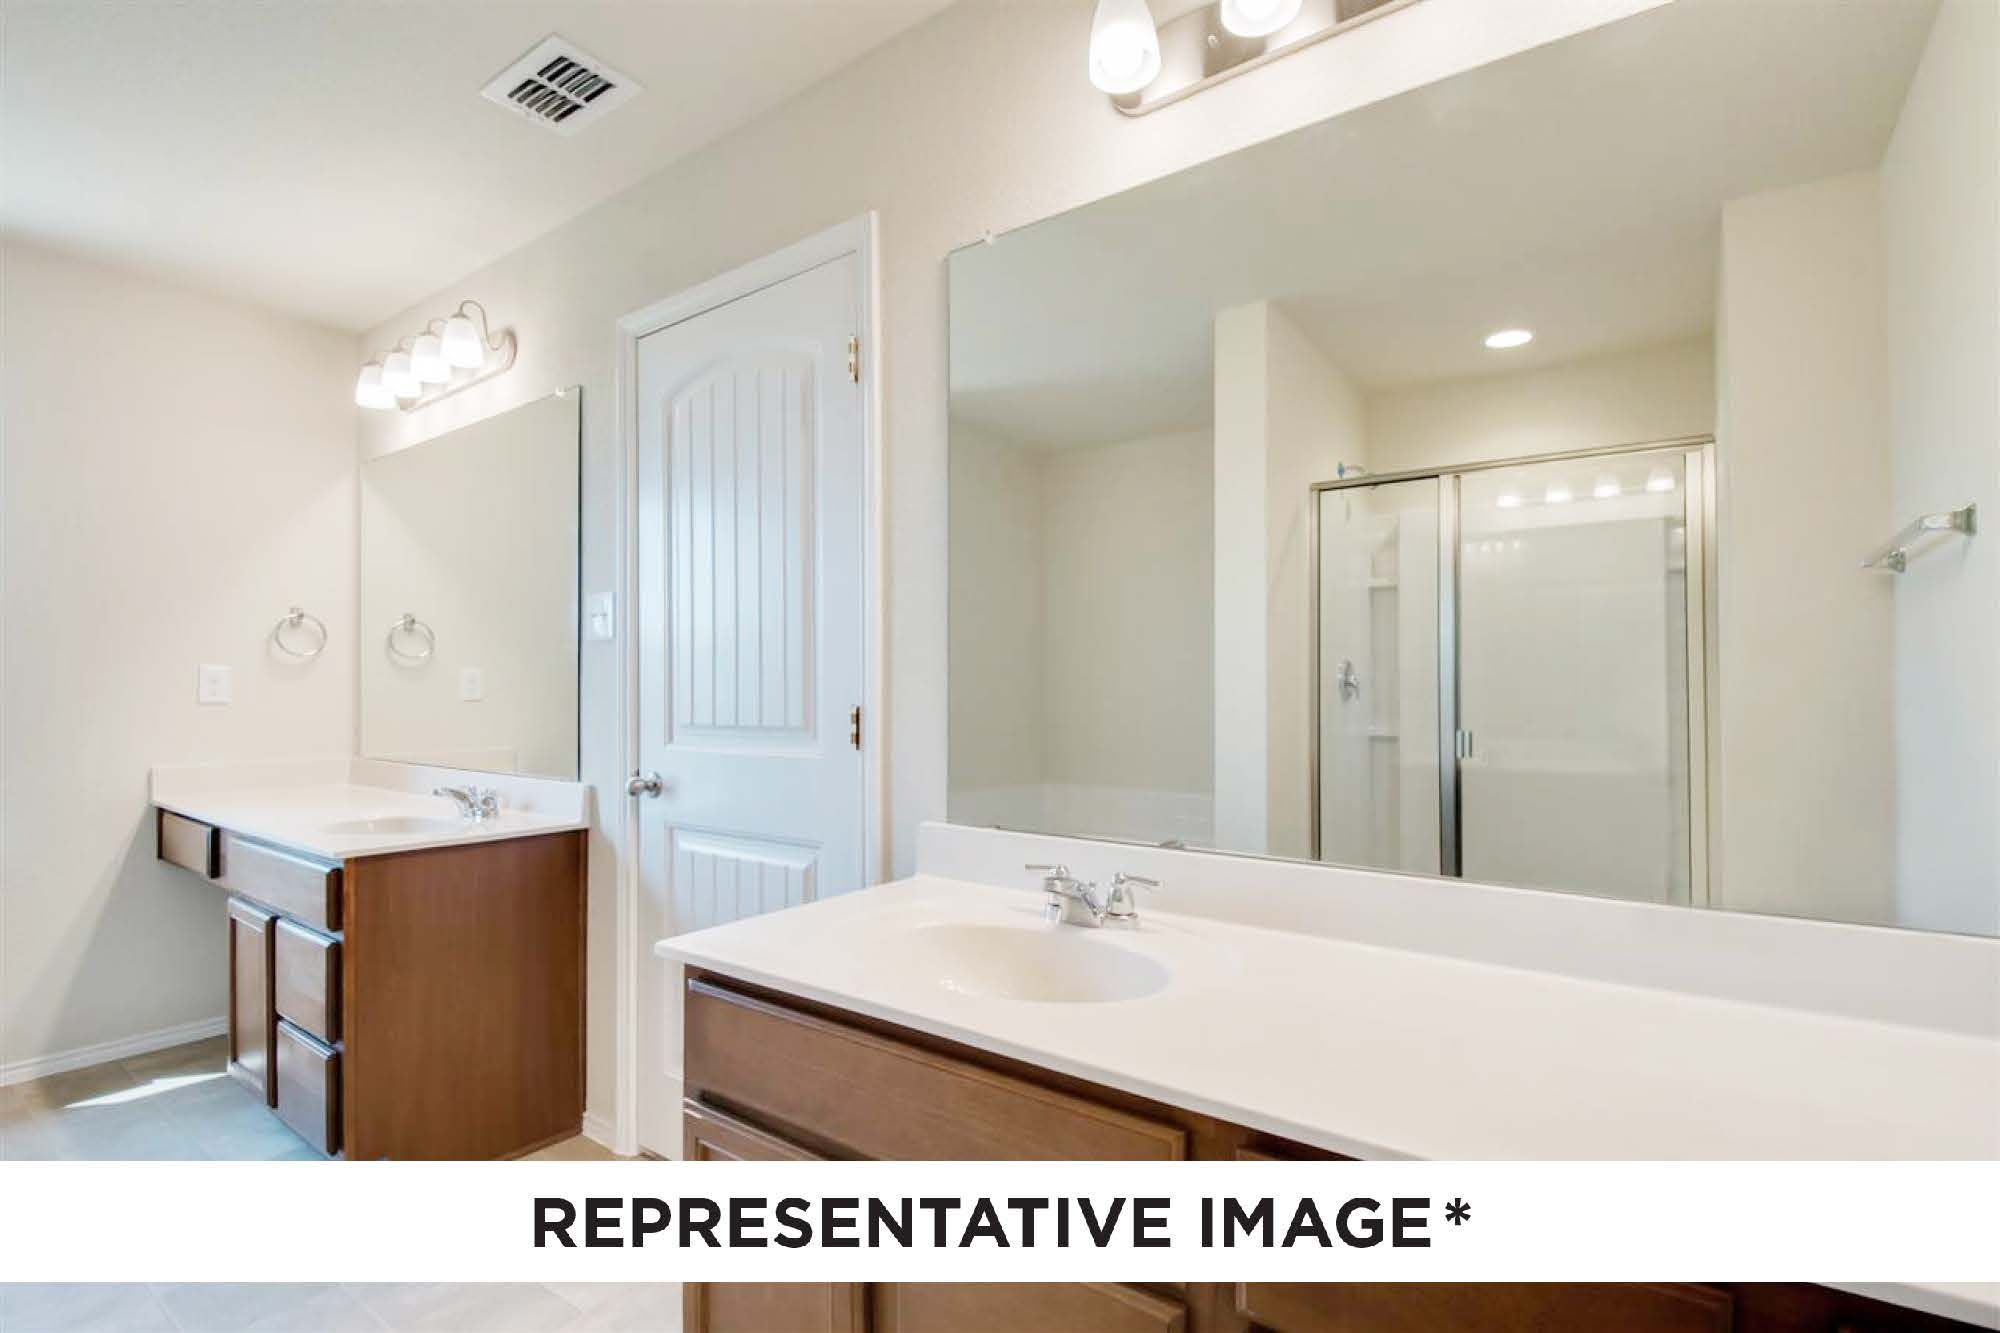 Bathroom featured in the Magnolia By HistoryMaker Homes    in Sherman-Denison, TX